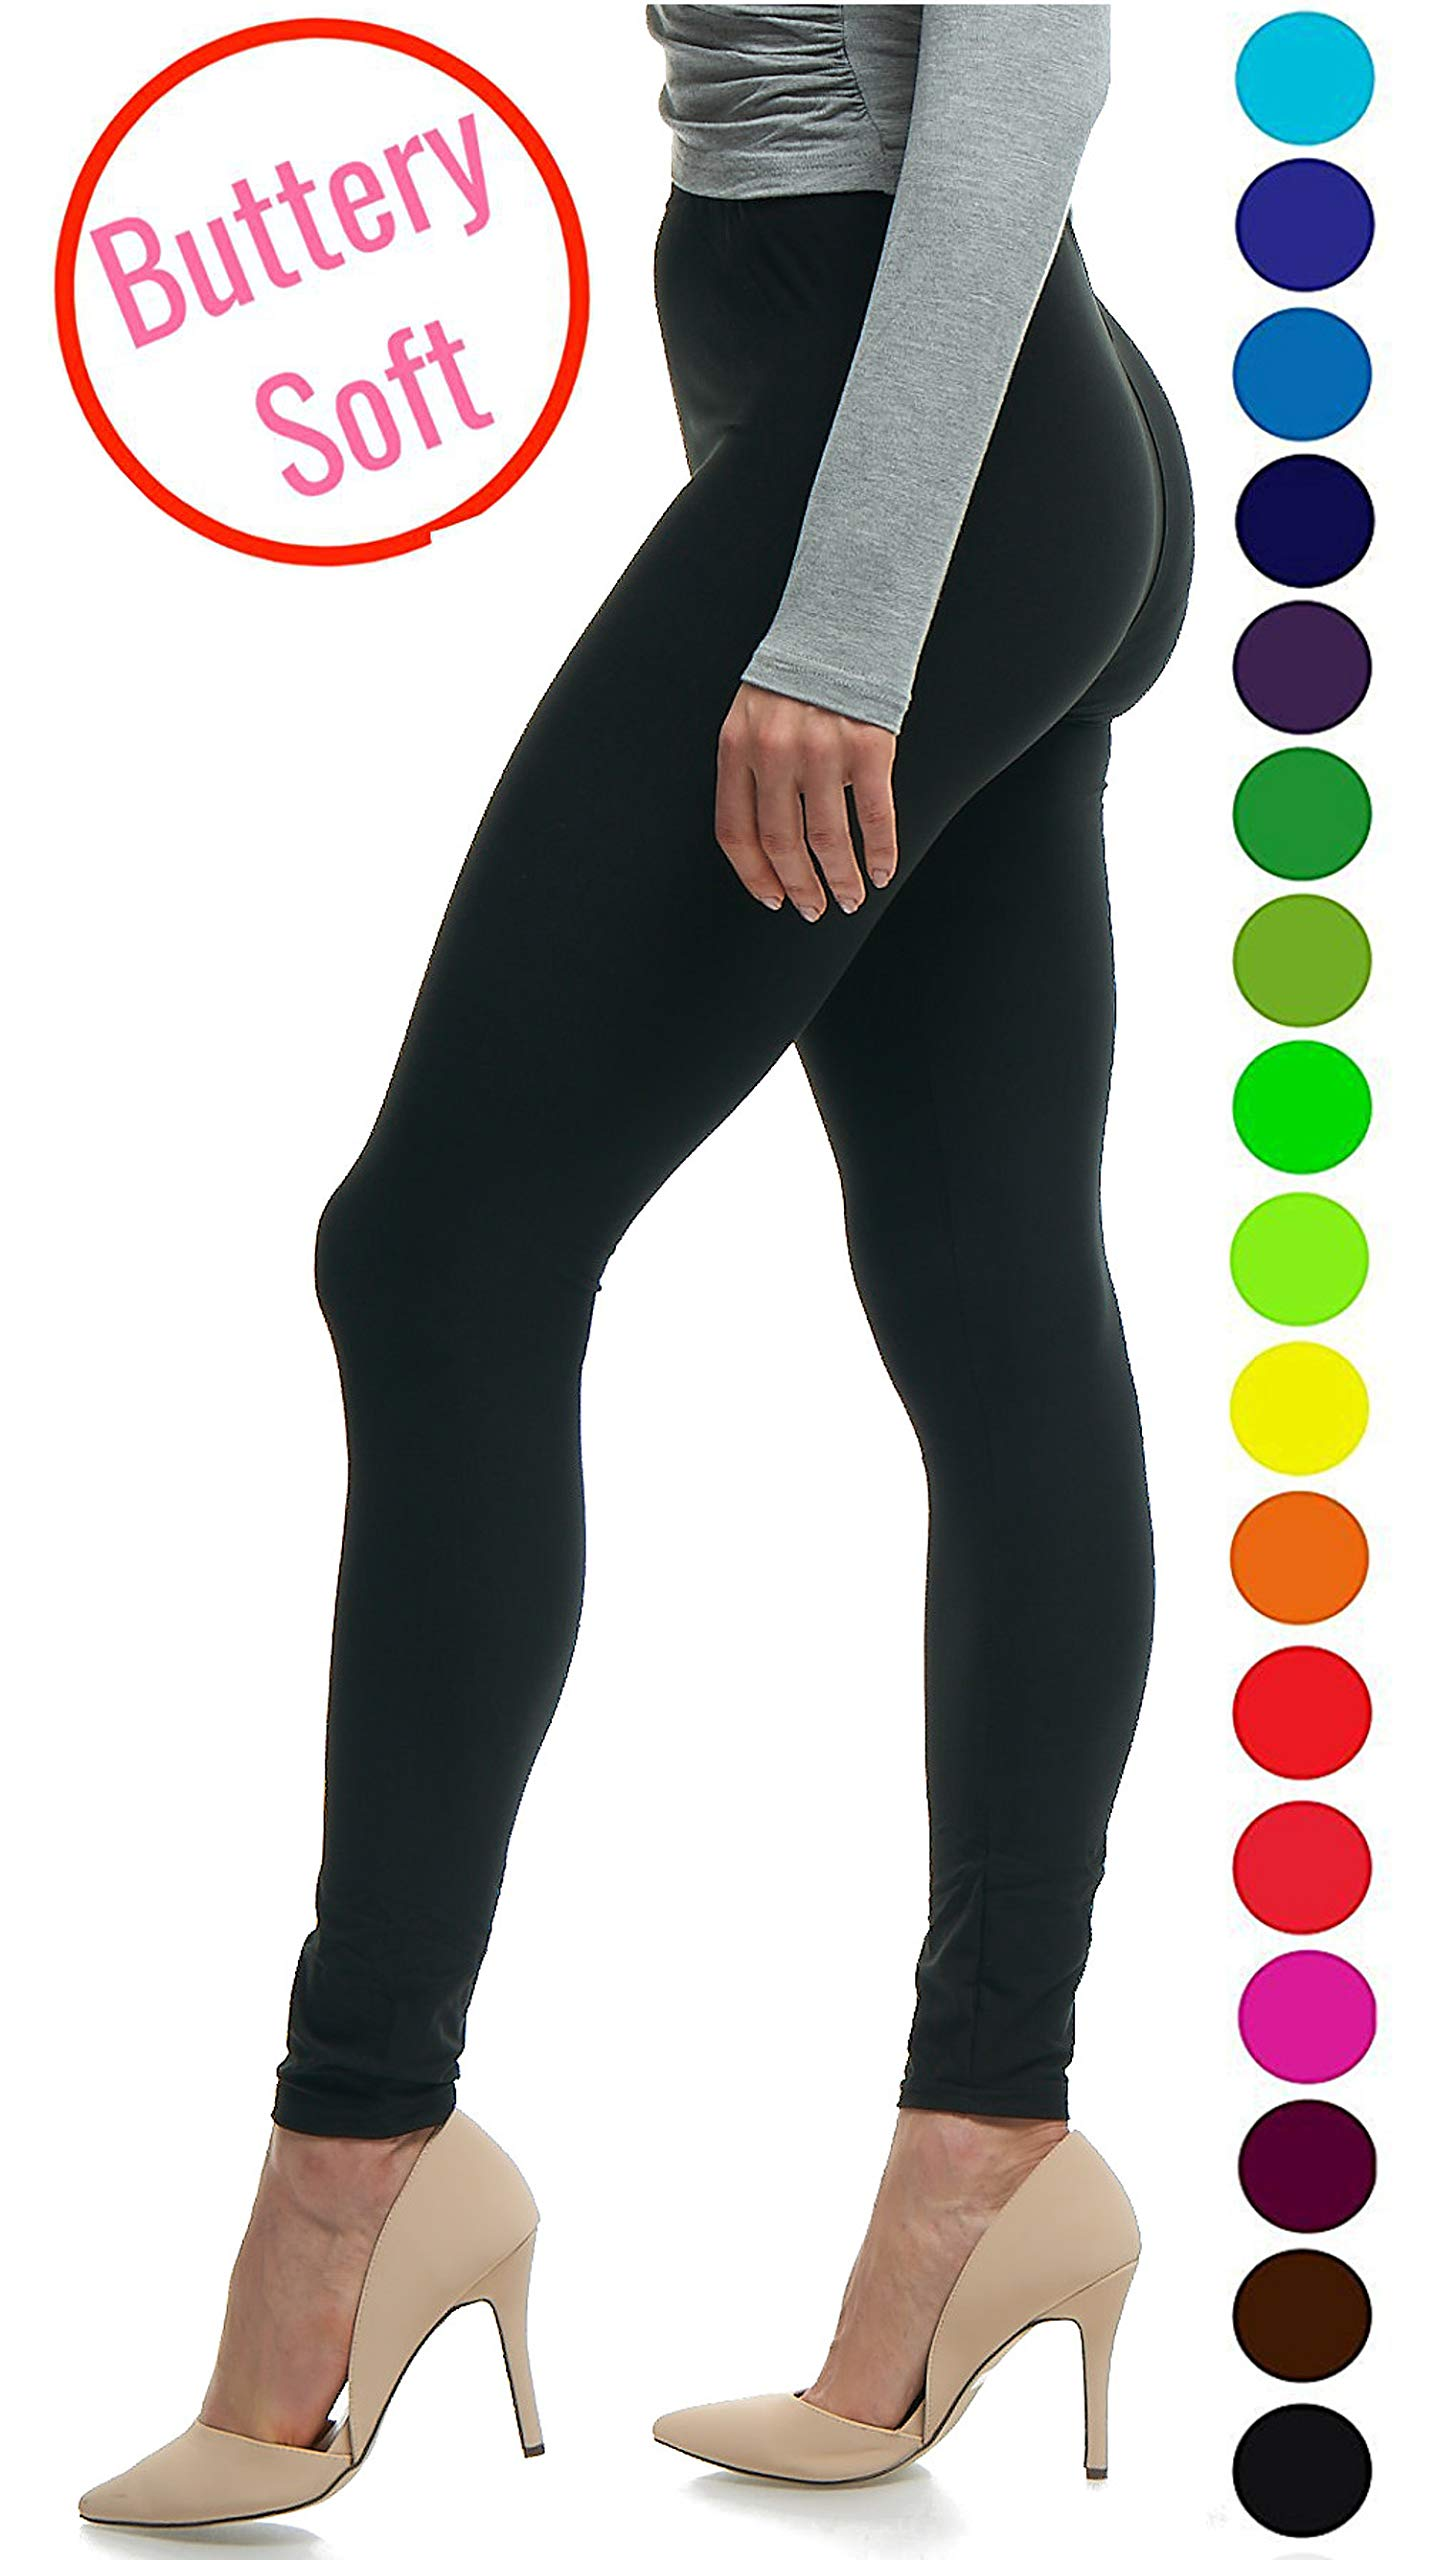 Lush Moda Black Buttery Soft Leggings - Variety of Colors - Black, One Size